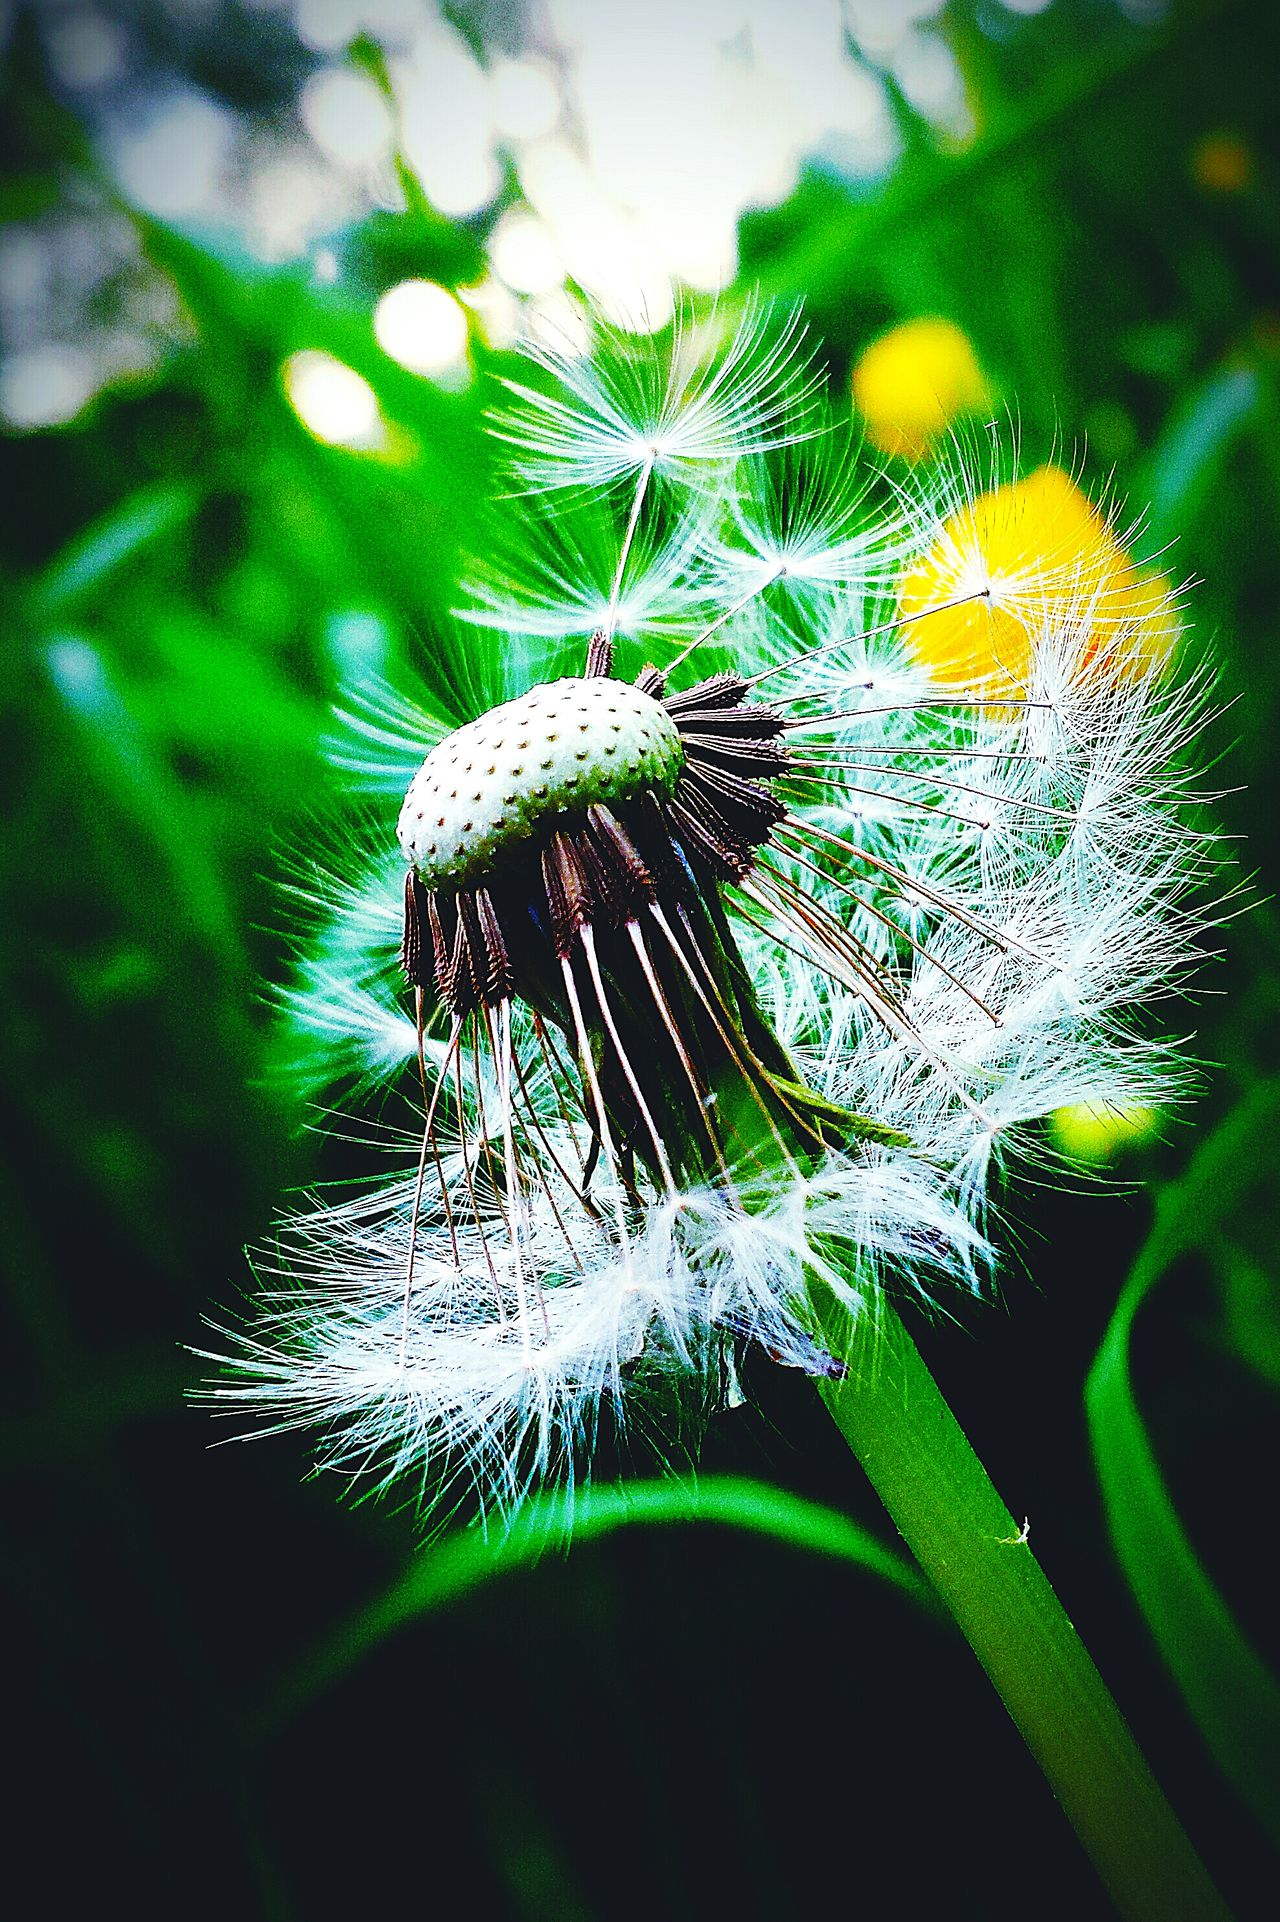 Dandelionfluff Dandelion Seeds Dandelion Wishinn Make A Wish ! Flower Beautiful Nature